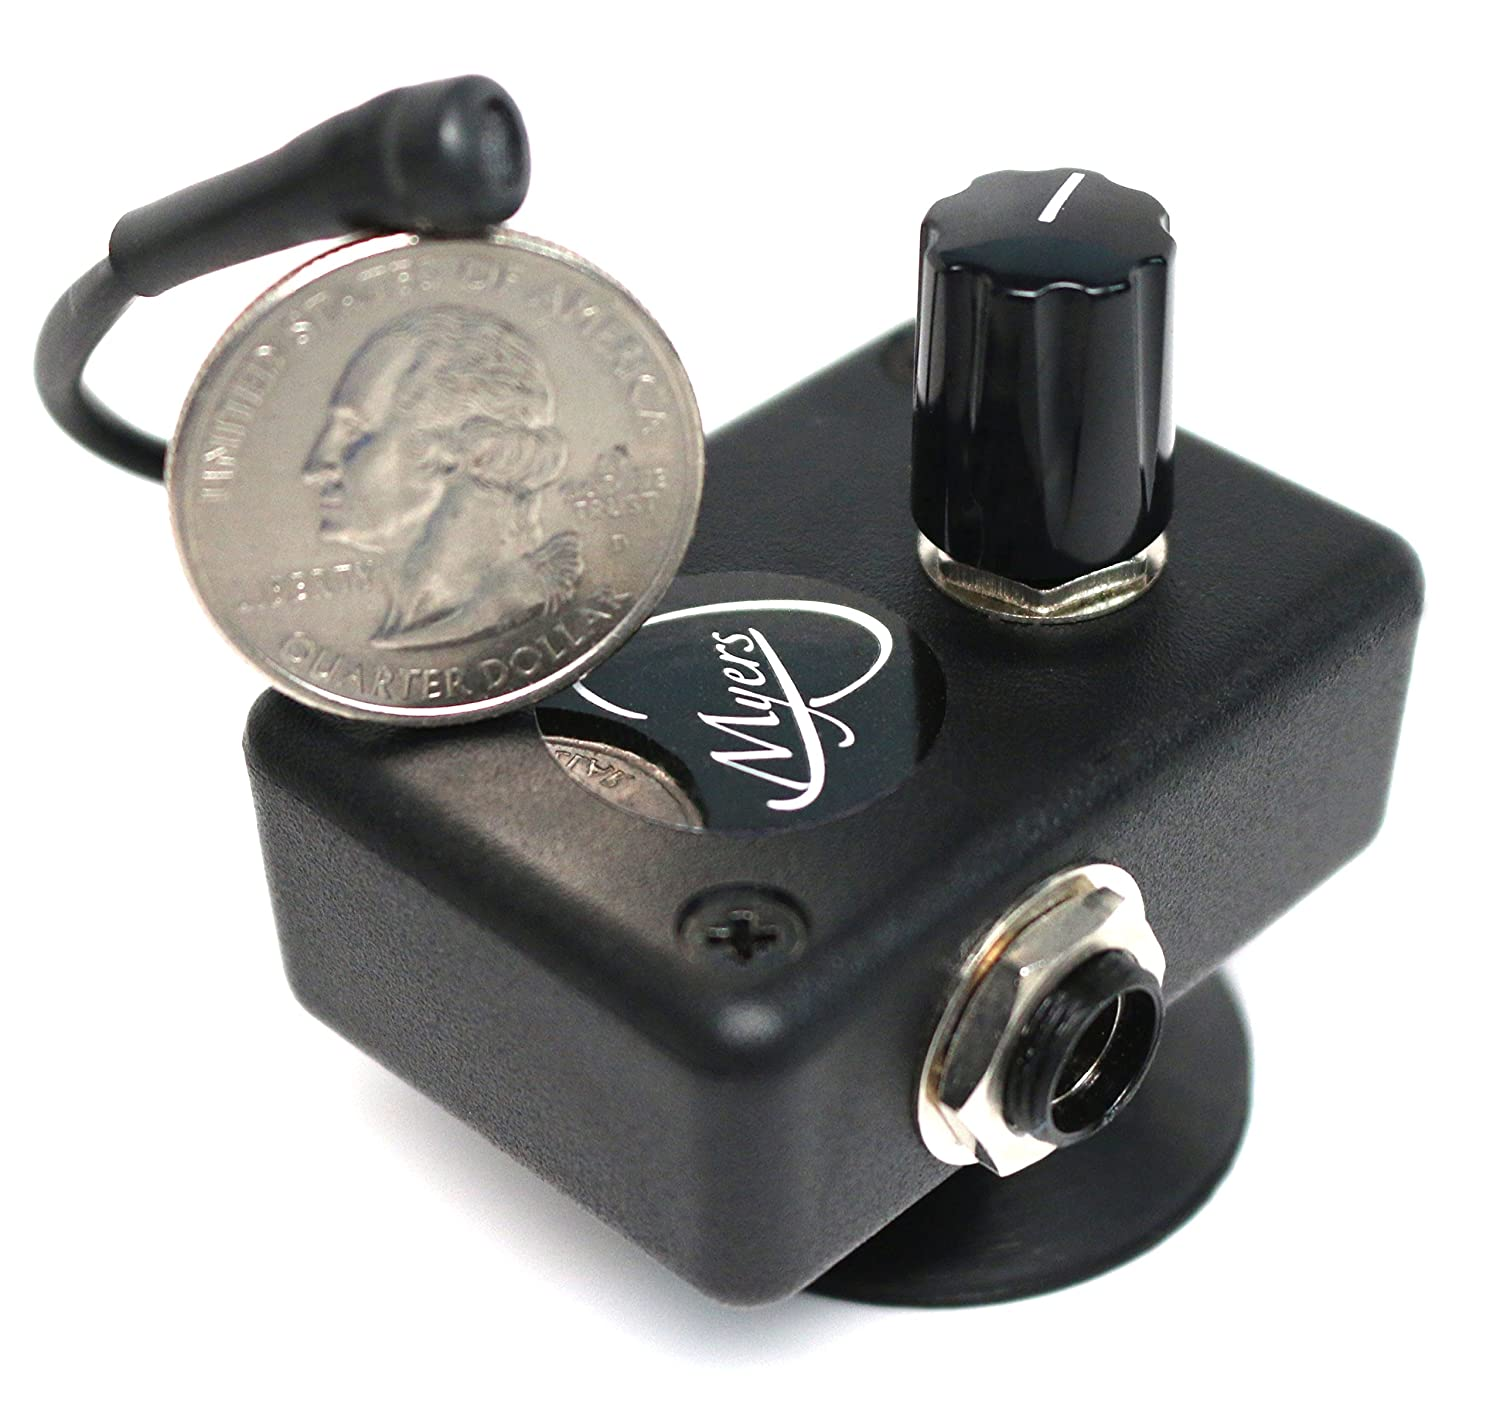 ARCHTOP MANDOLIN PICKUP with FLEXIBLE MICRO-GOOSE NECK by Myers Pickups ~ See it in ACTION! Copy and paste: myerspickups.com 22